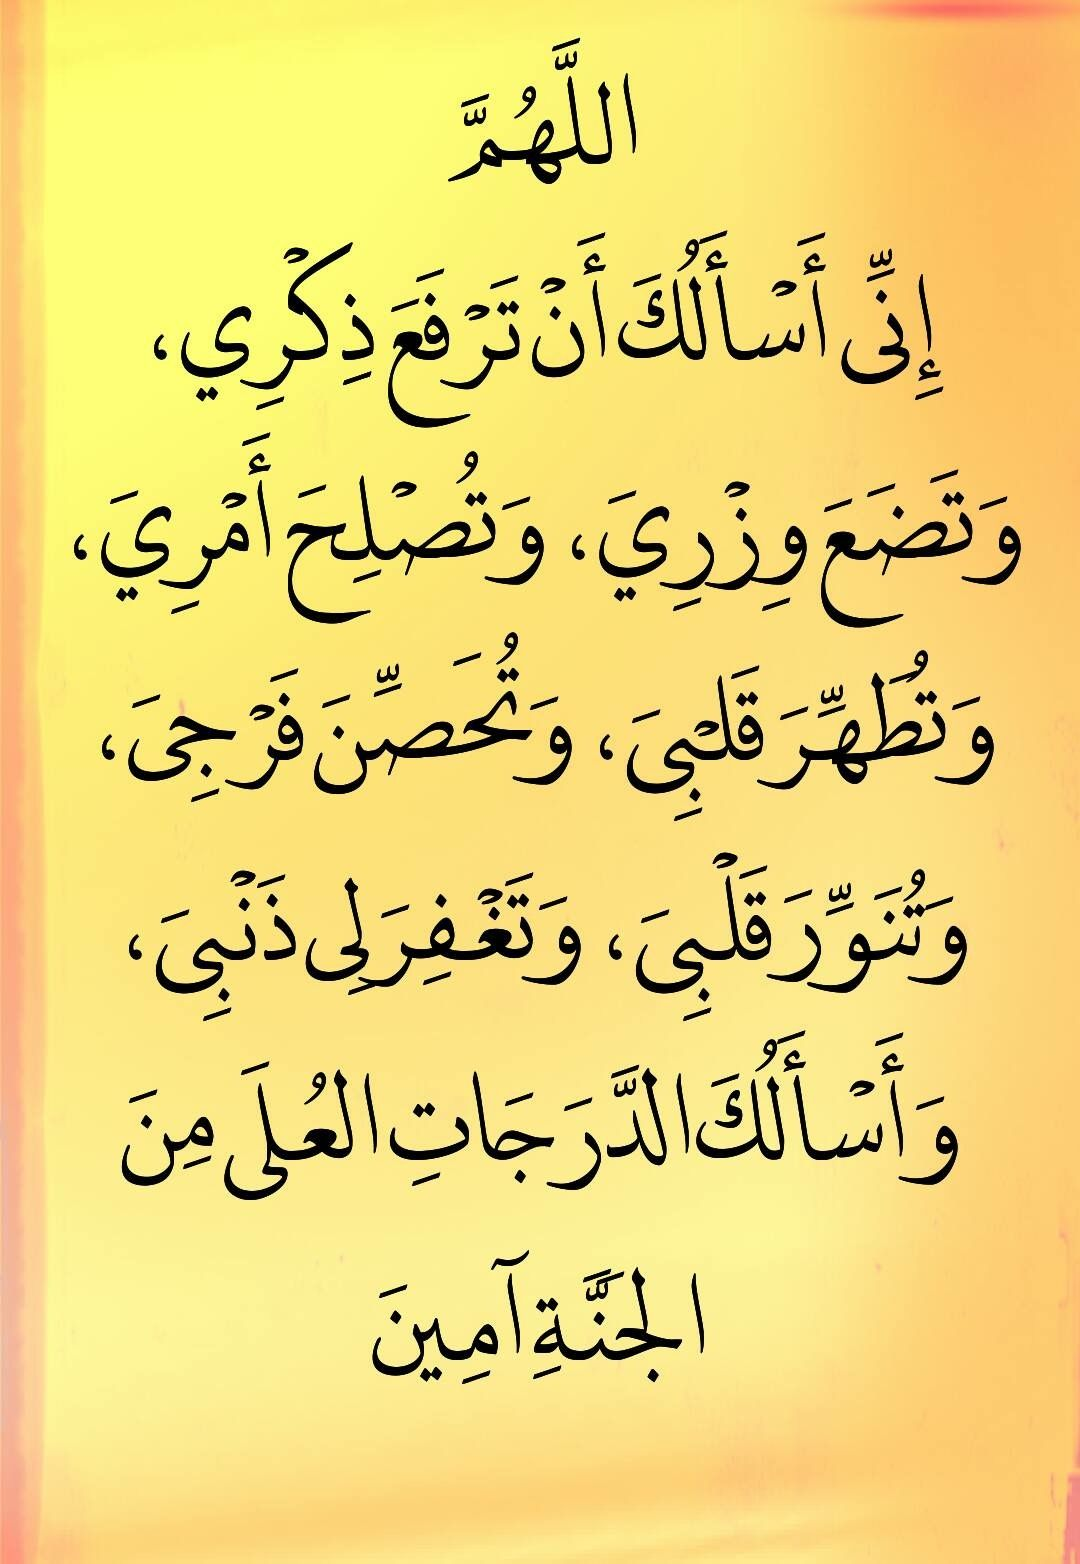 Pin By Lolim On Khaled Bahnasawy Islam Facts Islamic Phrases Islamic Quotes Quran